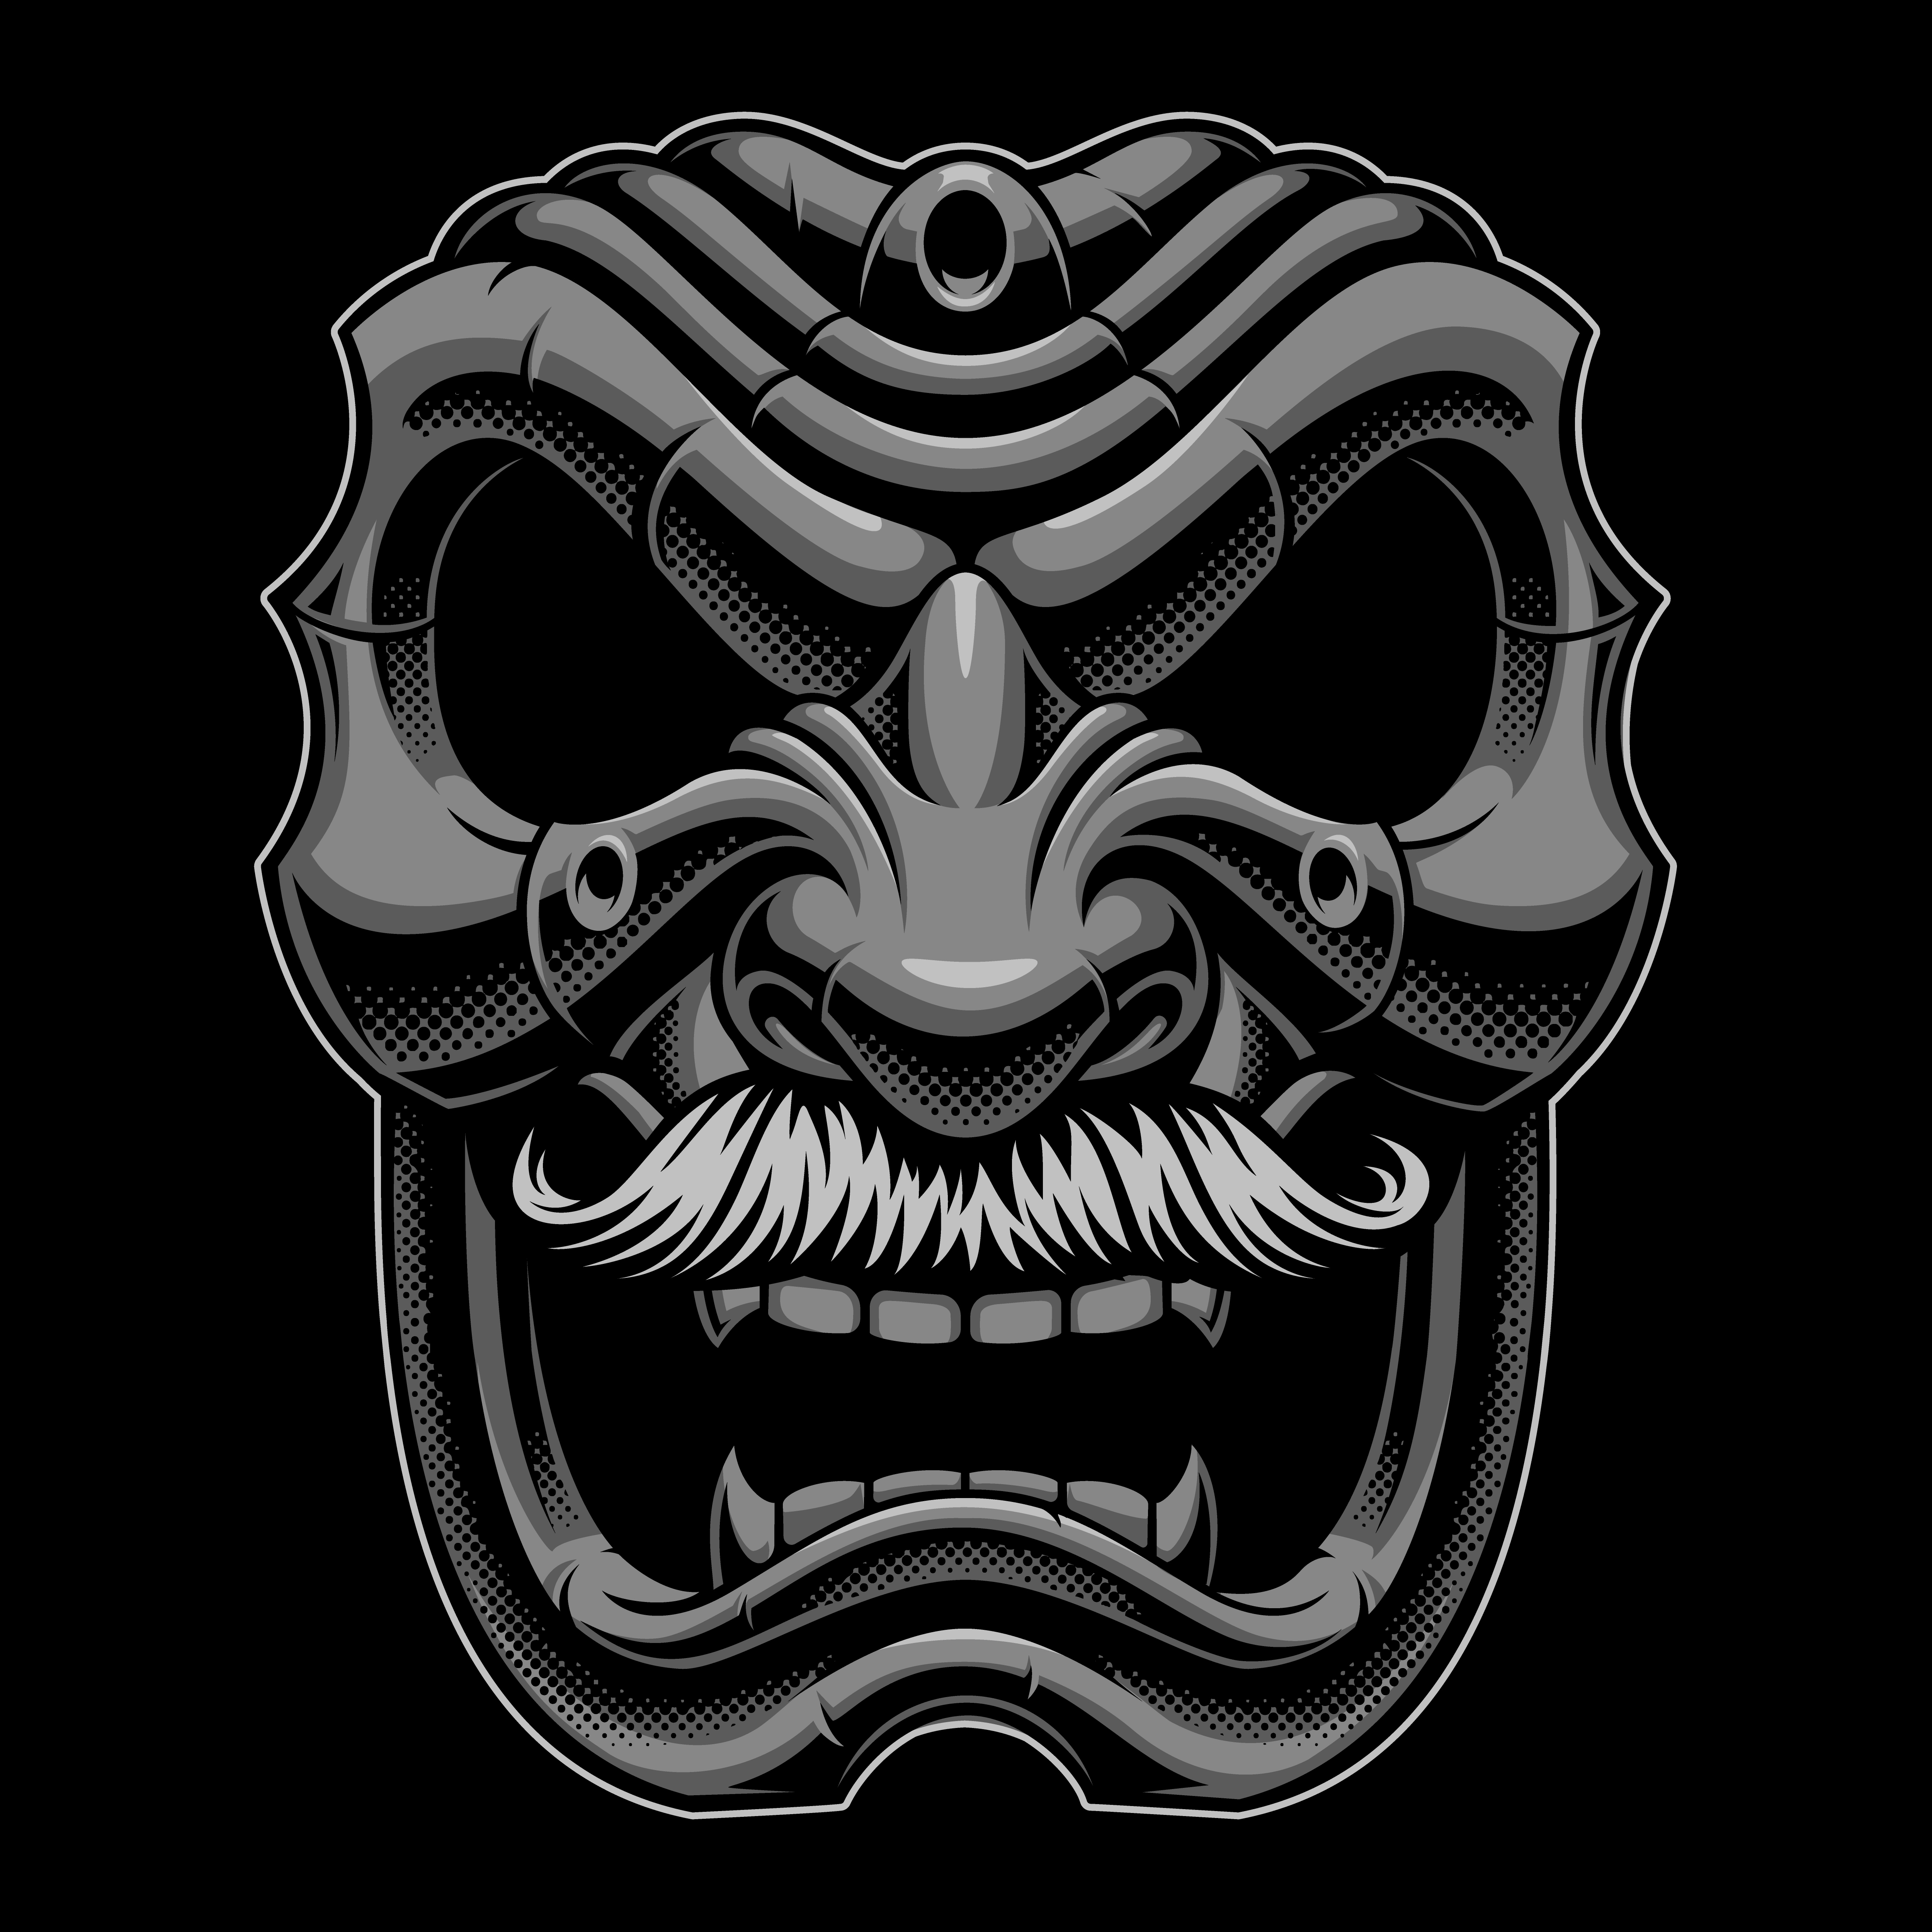 Samurai Mask With Mustahce Download Free Vectors Clipart Graphics Vector Art